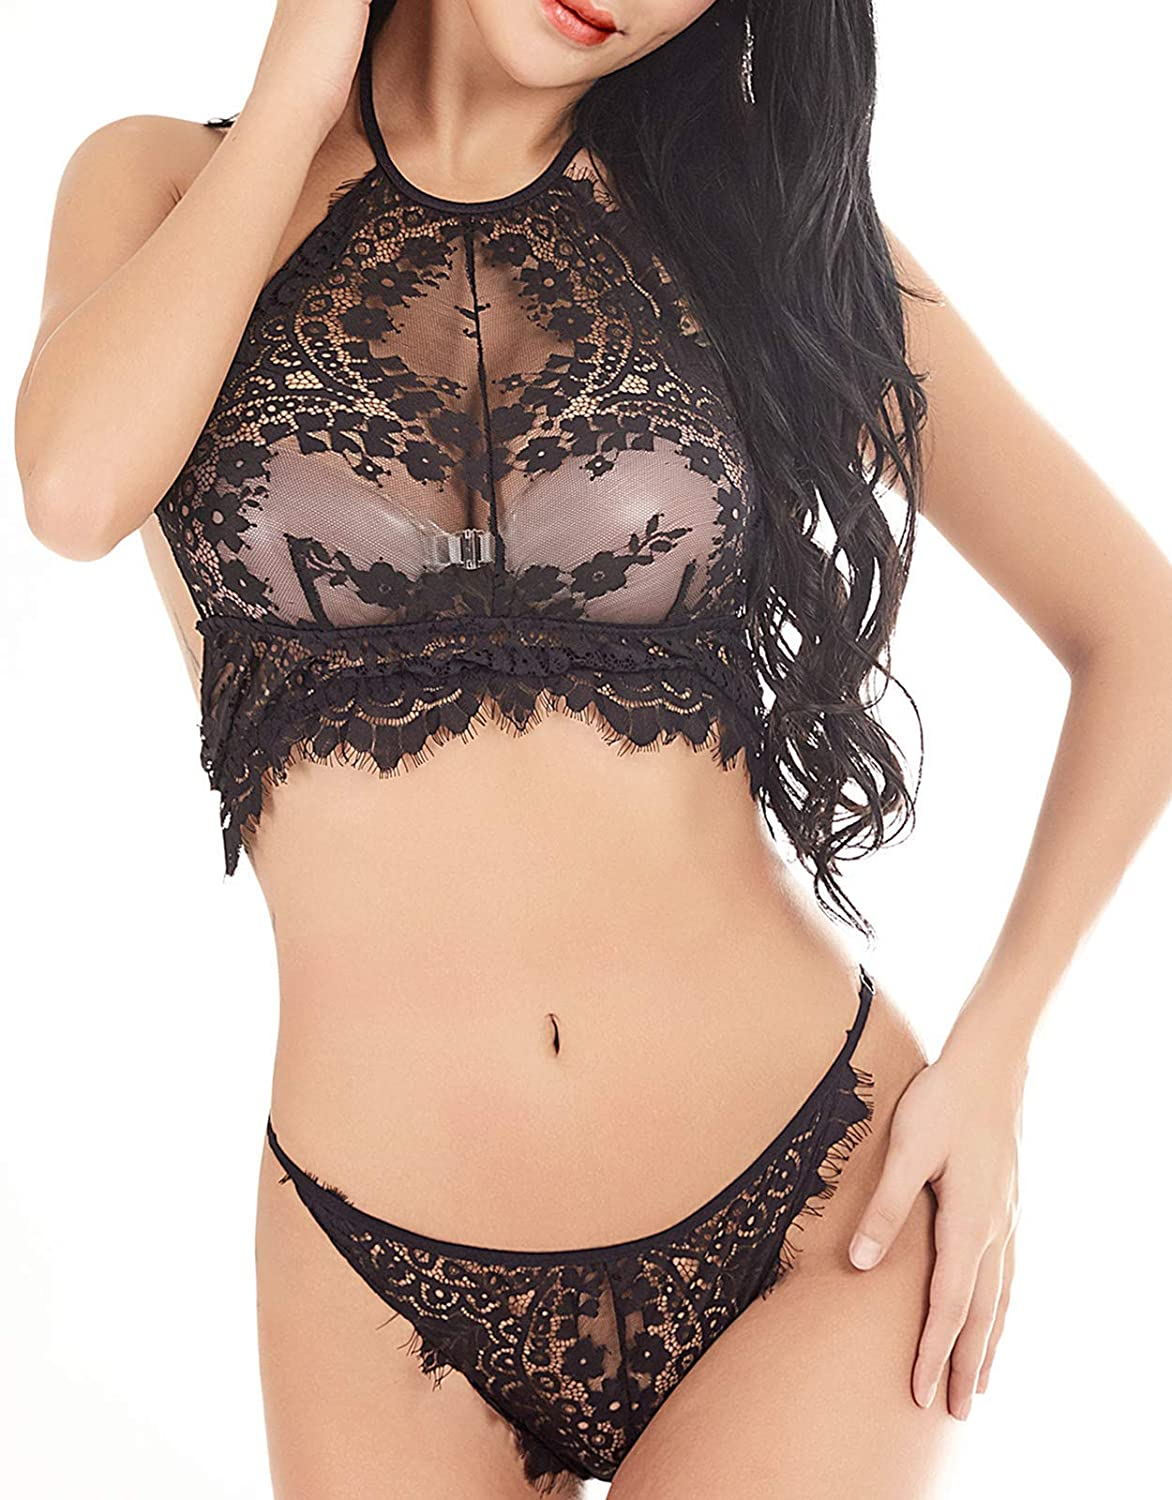 b16d9e535e PUT YOUR BODY IN A TOTALLY RELAXED STATUS  Eye Patch Lace Bralette and  panty set